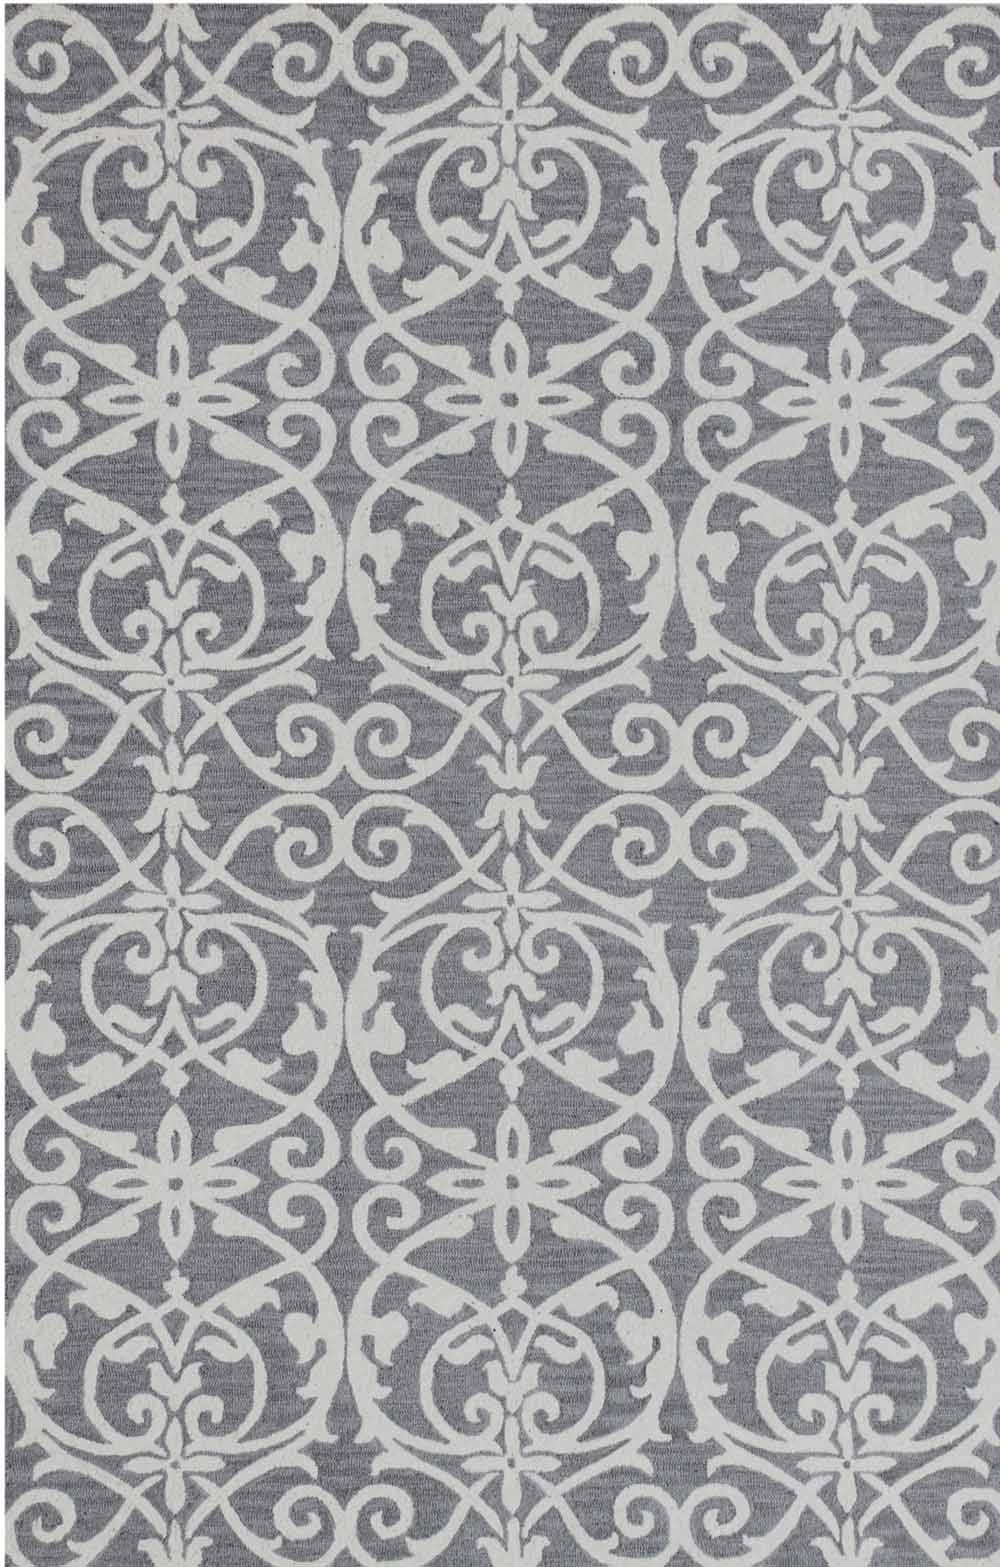 Dynamic Area Rugs Galleria 7864-910 Silver Geometric Design